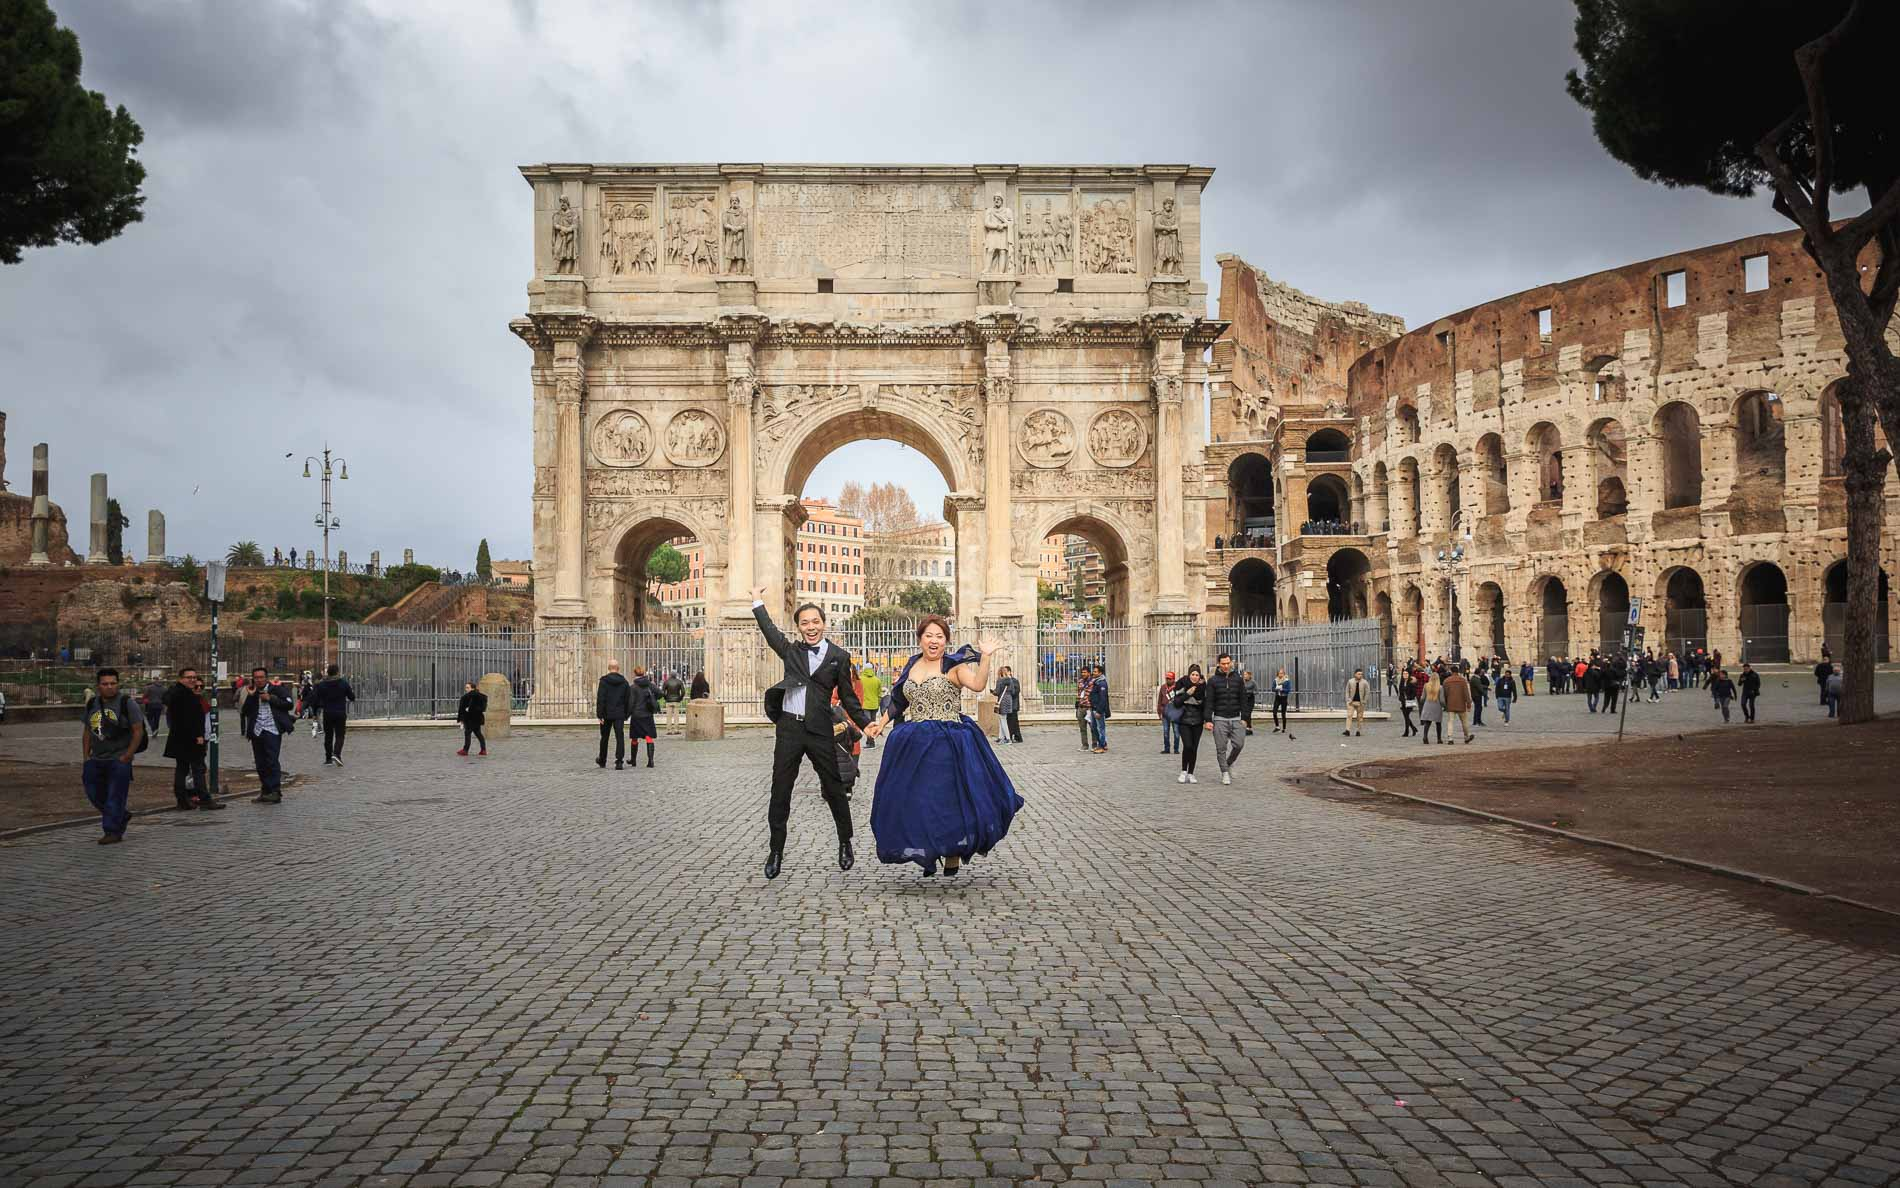 Japanese destination wedding couple in Rome, Italy by Italian wedding photographer Studio inFocus Weddings Daniele Romagnoli